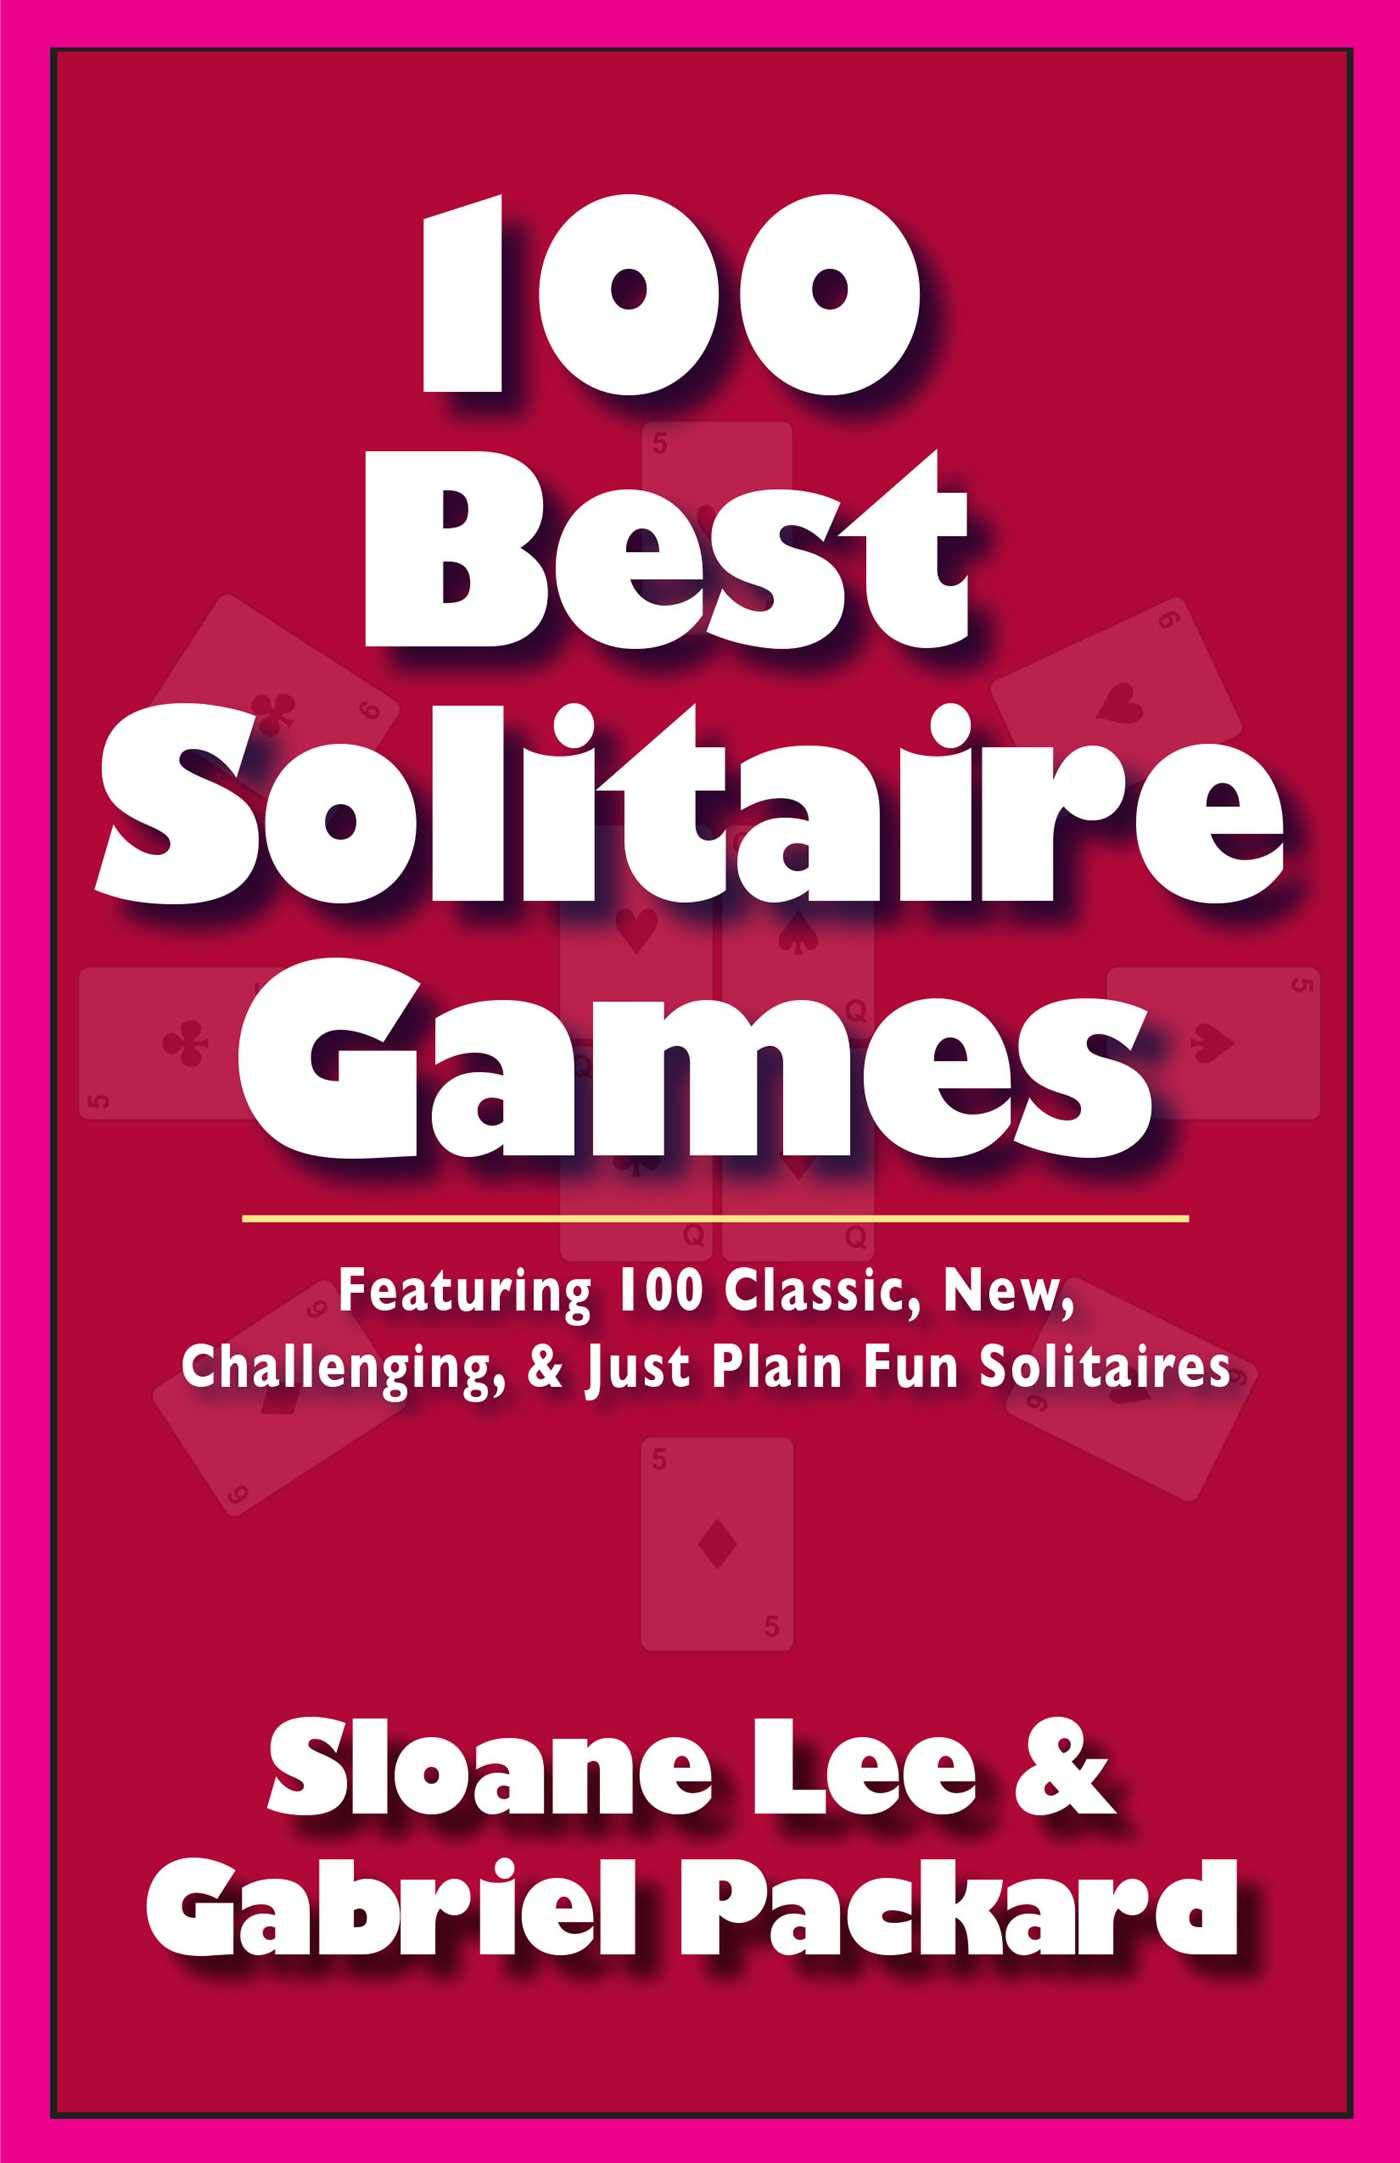 The 100 Best Solitaire Games